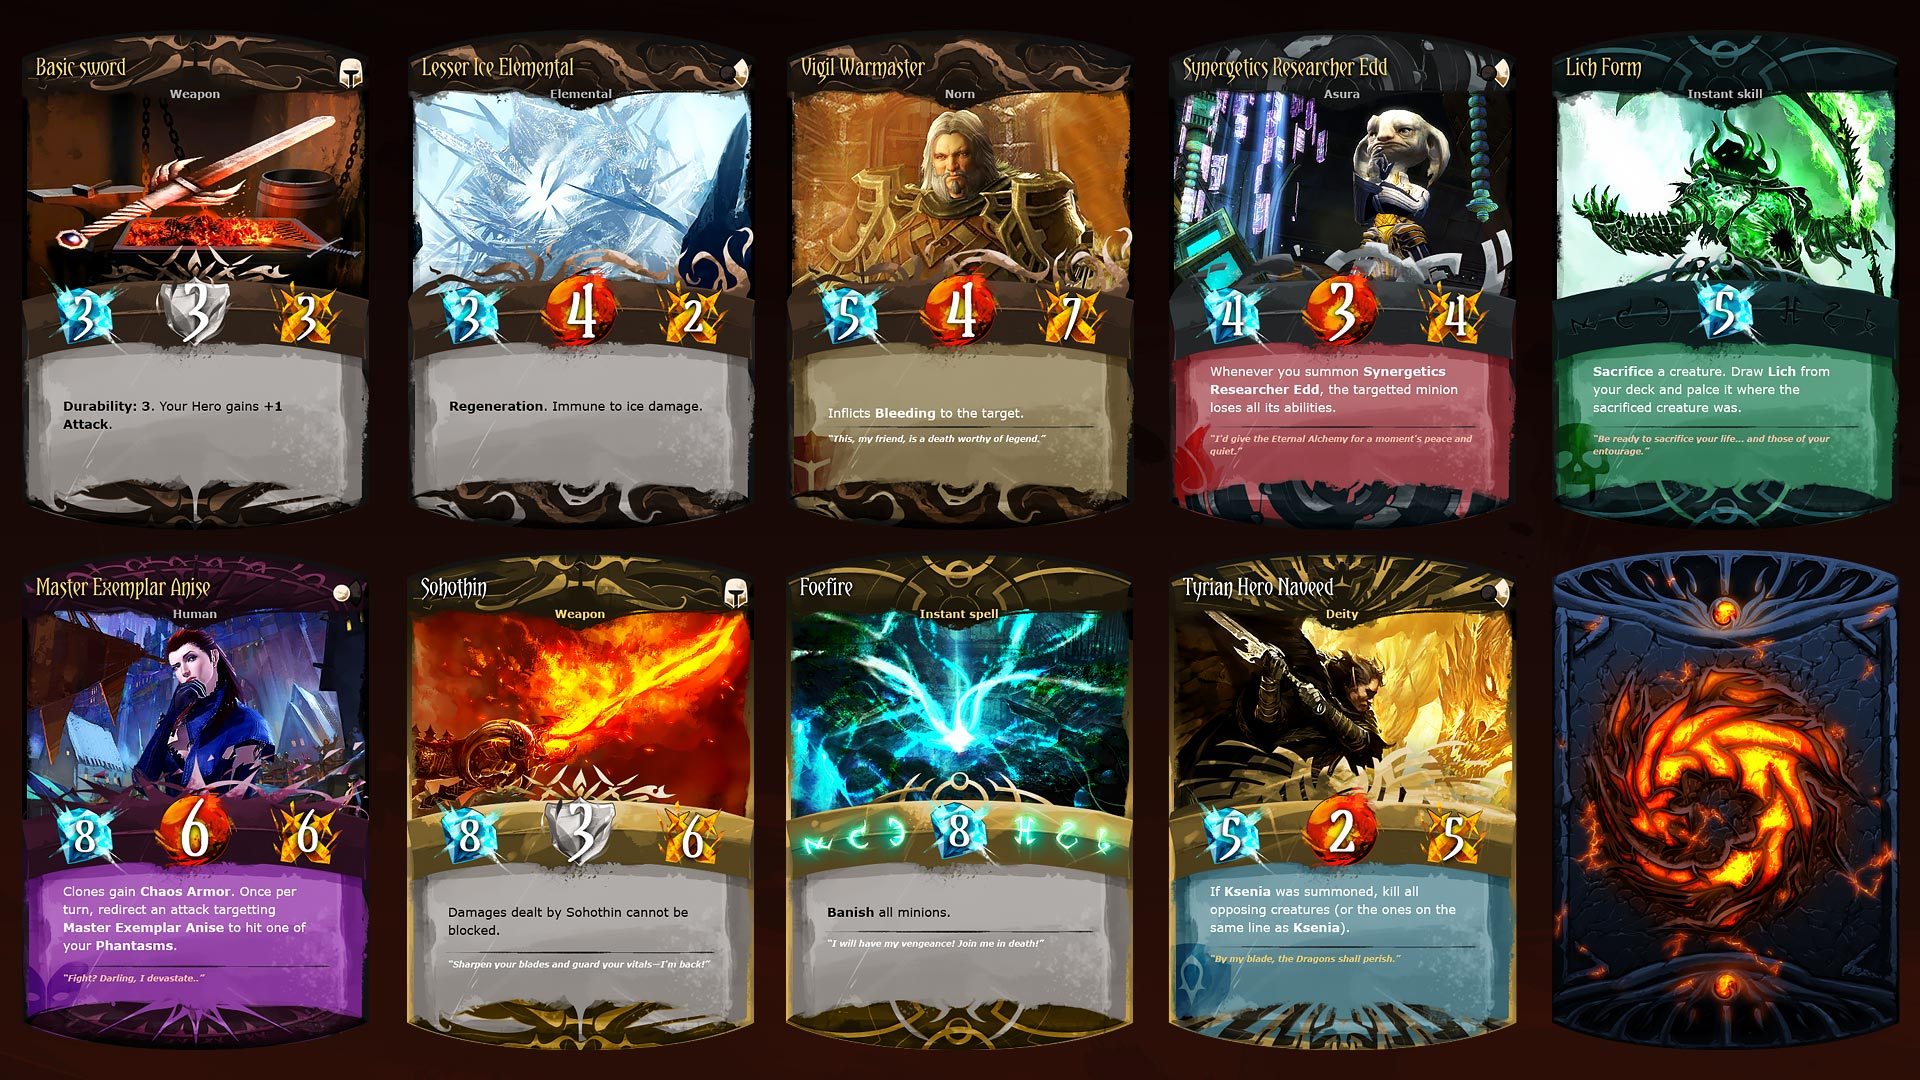 Guild Wars 2 Community and Partnership - Unofficial collectible cards